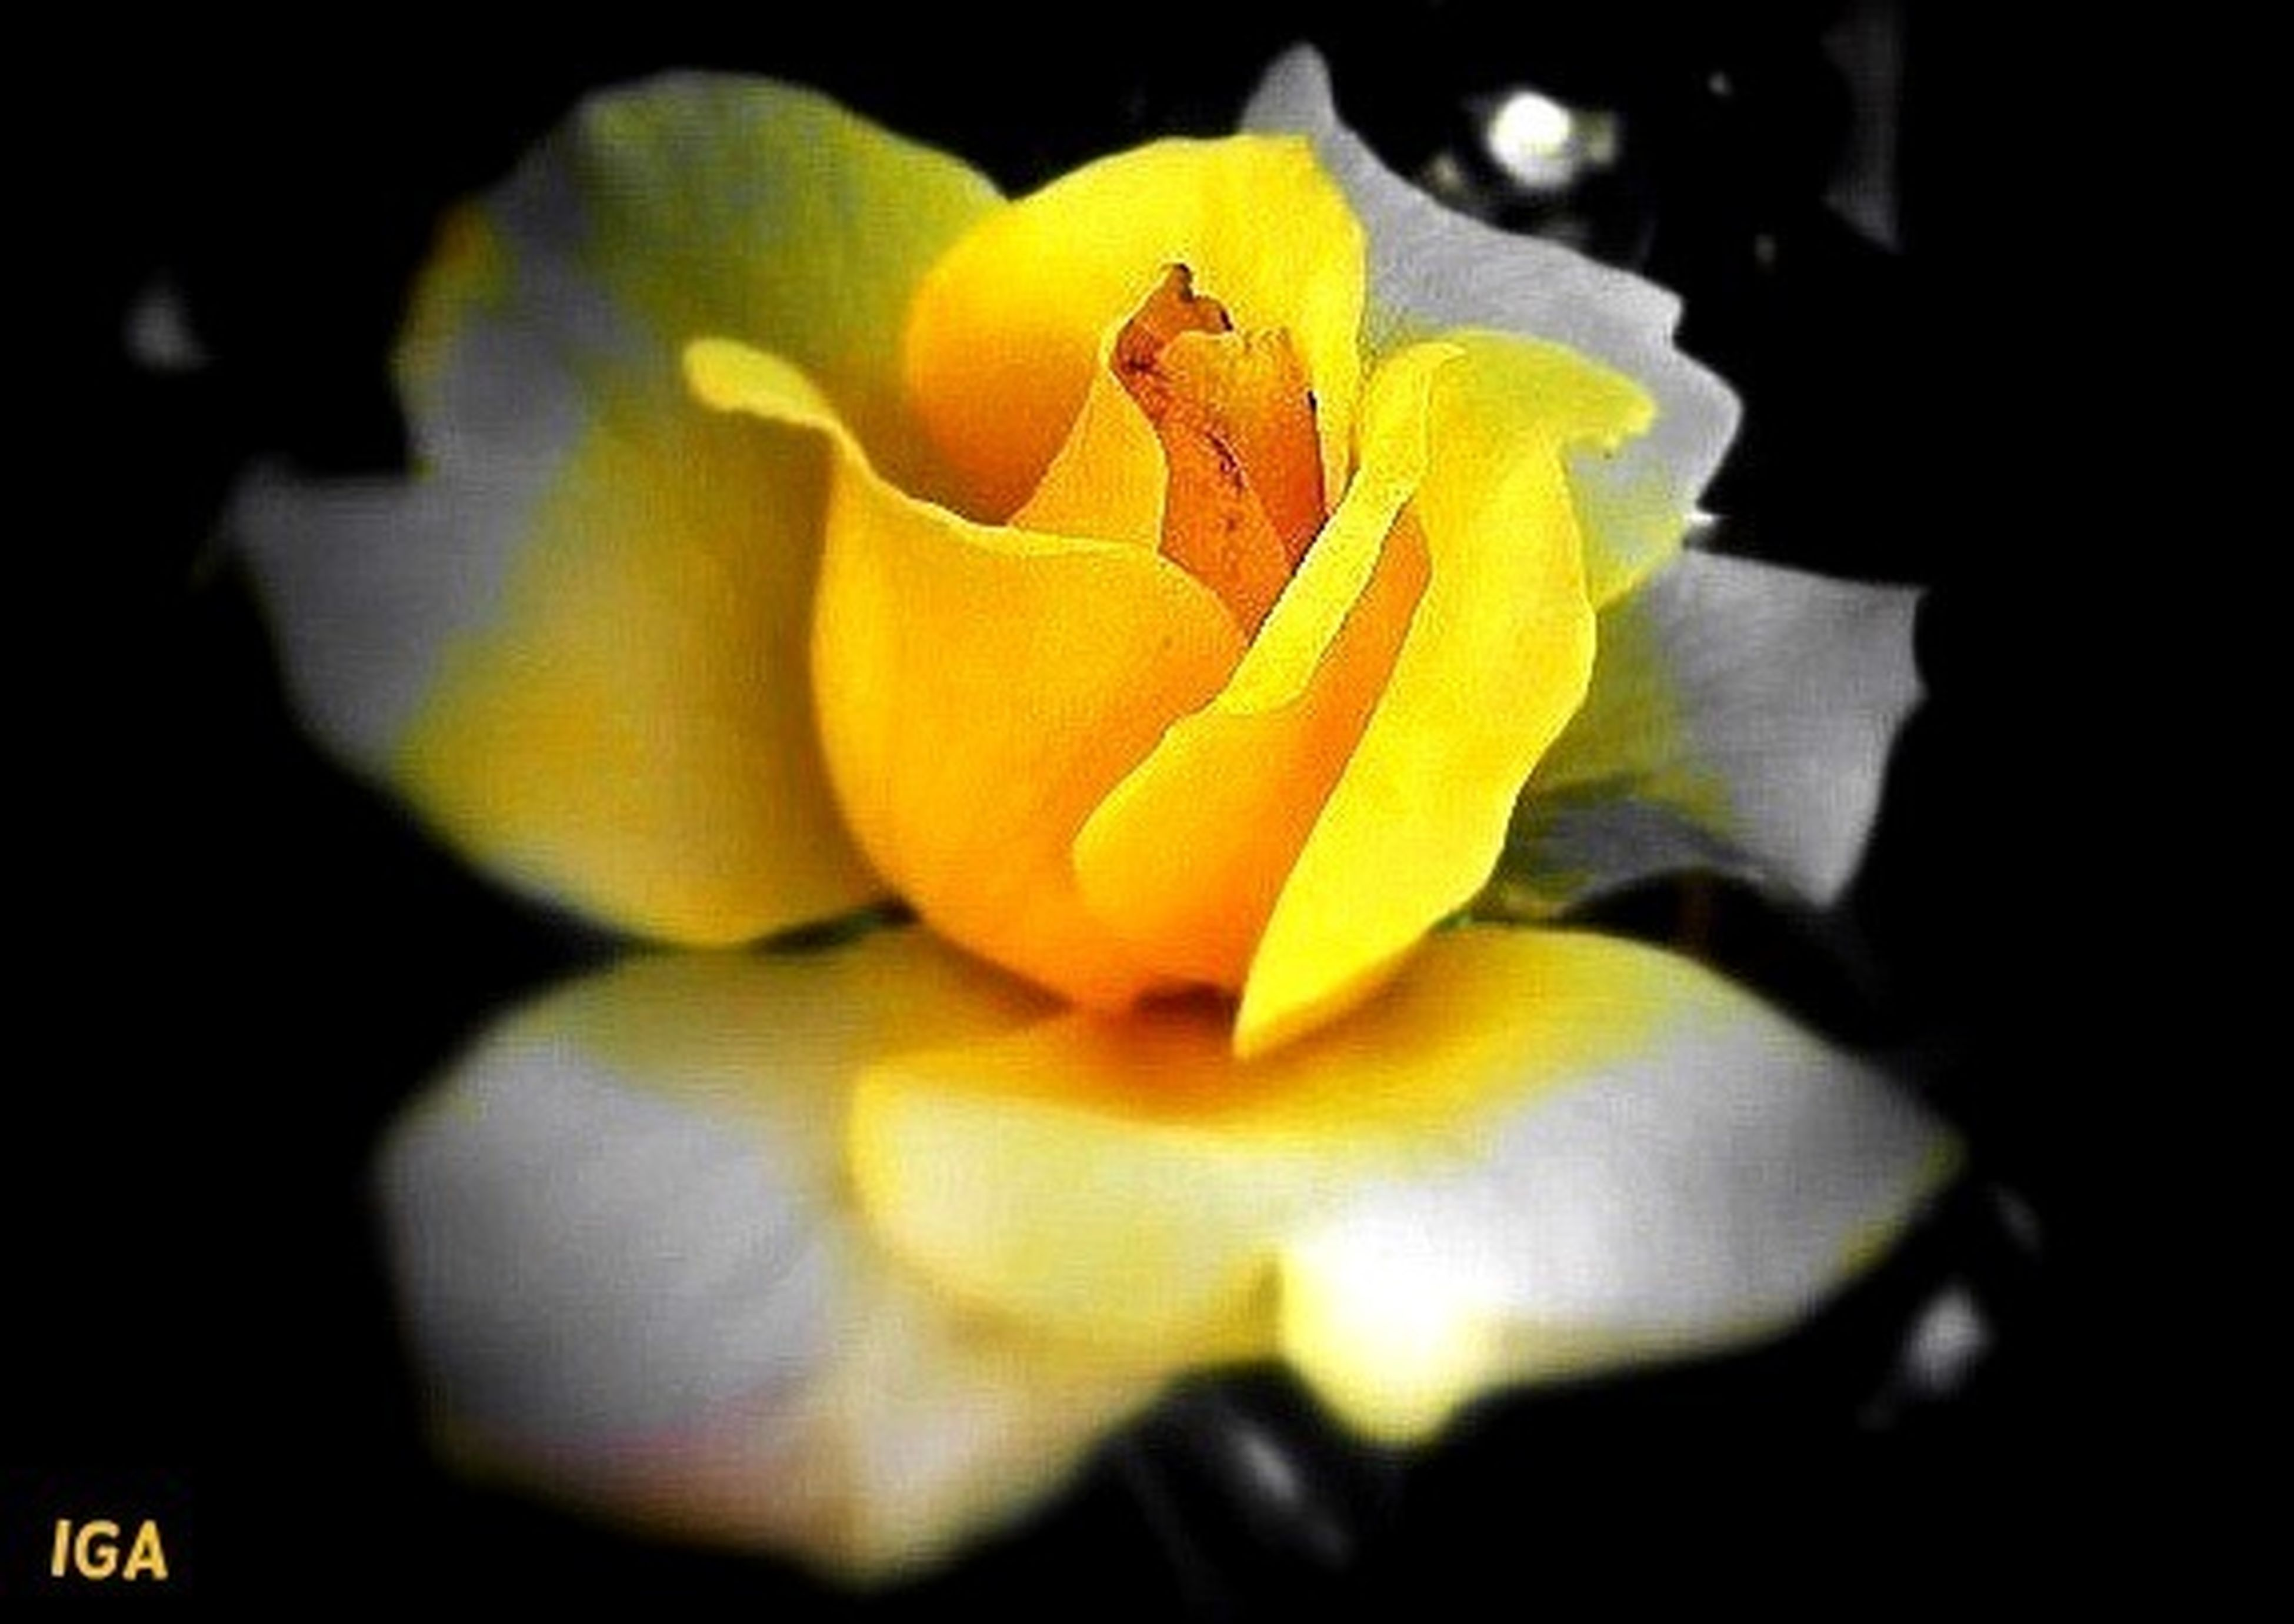 flower, petal, flower head, yellow, fragility, freshness, beauty in nature, close-up, growth, blooming, nature, single flower, rose - flower, focus on foreground, in bloom, plant, blossom, selective focus, black background, no people